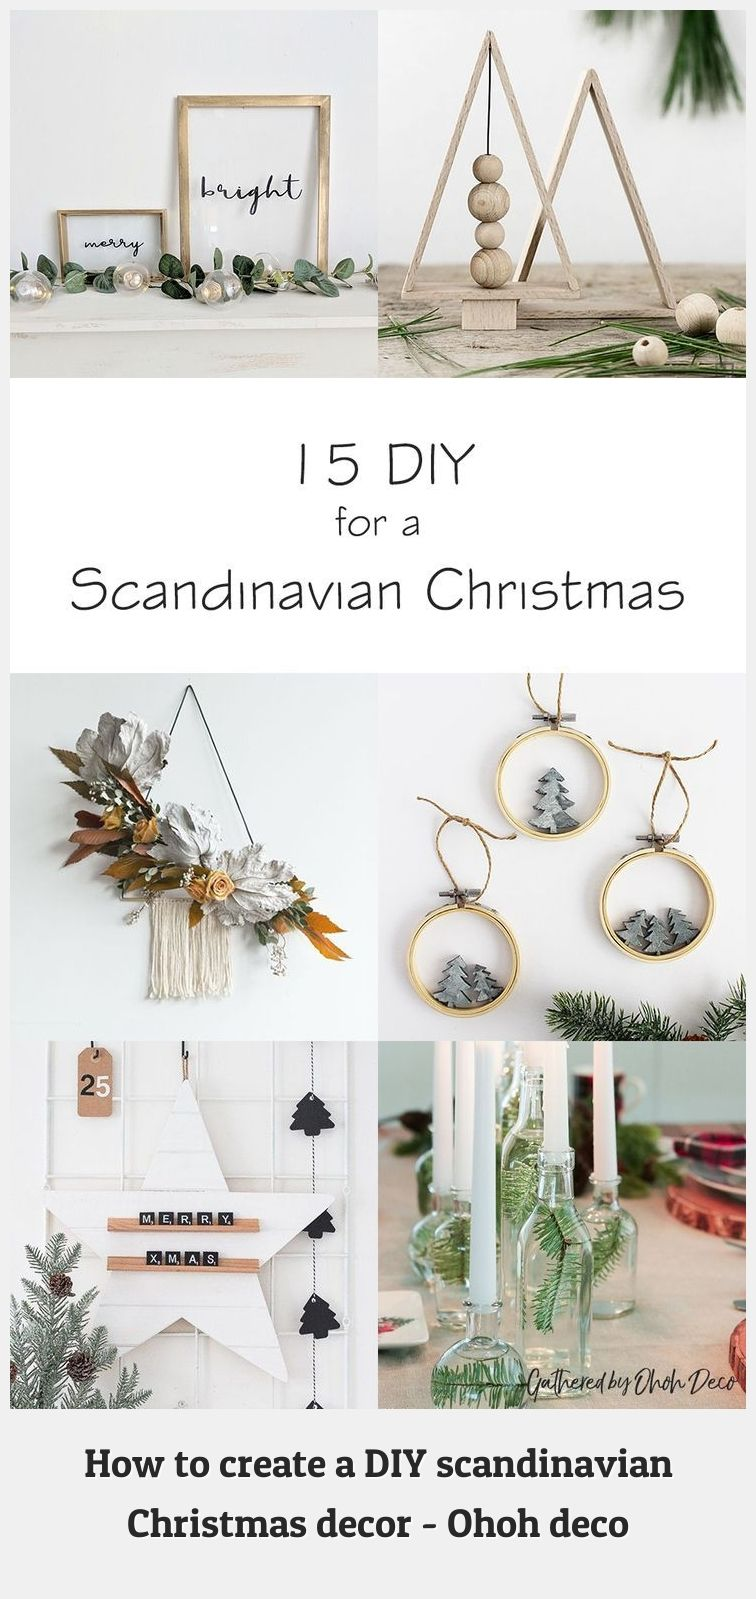 Diy Christmas Decorations 28062 15 Diy To Create A Scandinavian Christmas Decor In 2020 Scandinavian Christmas Decorations Christmas Decor Diy Christmas Decorations